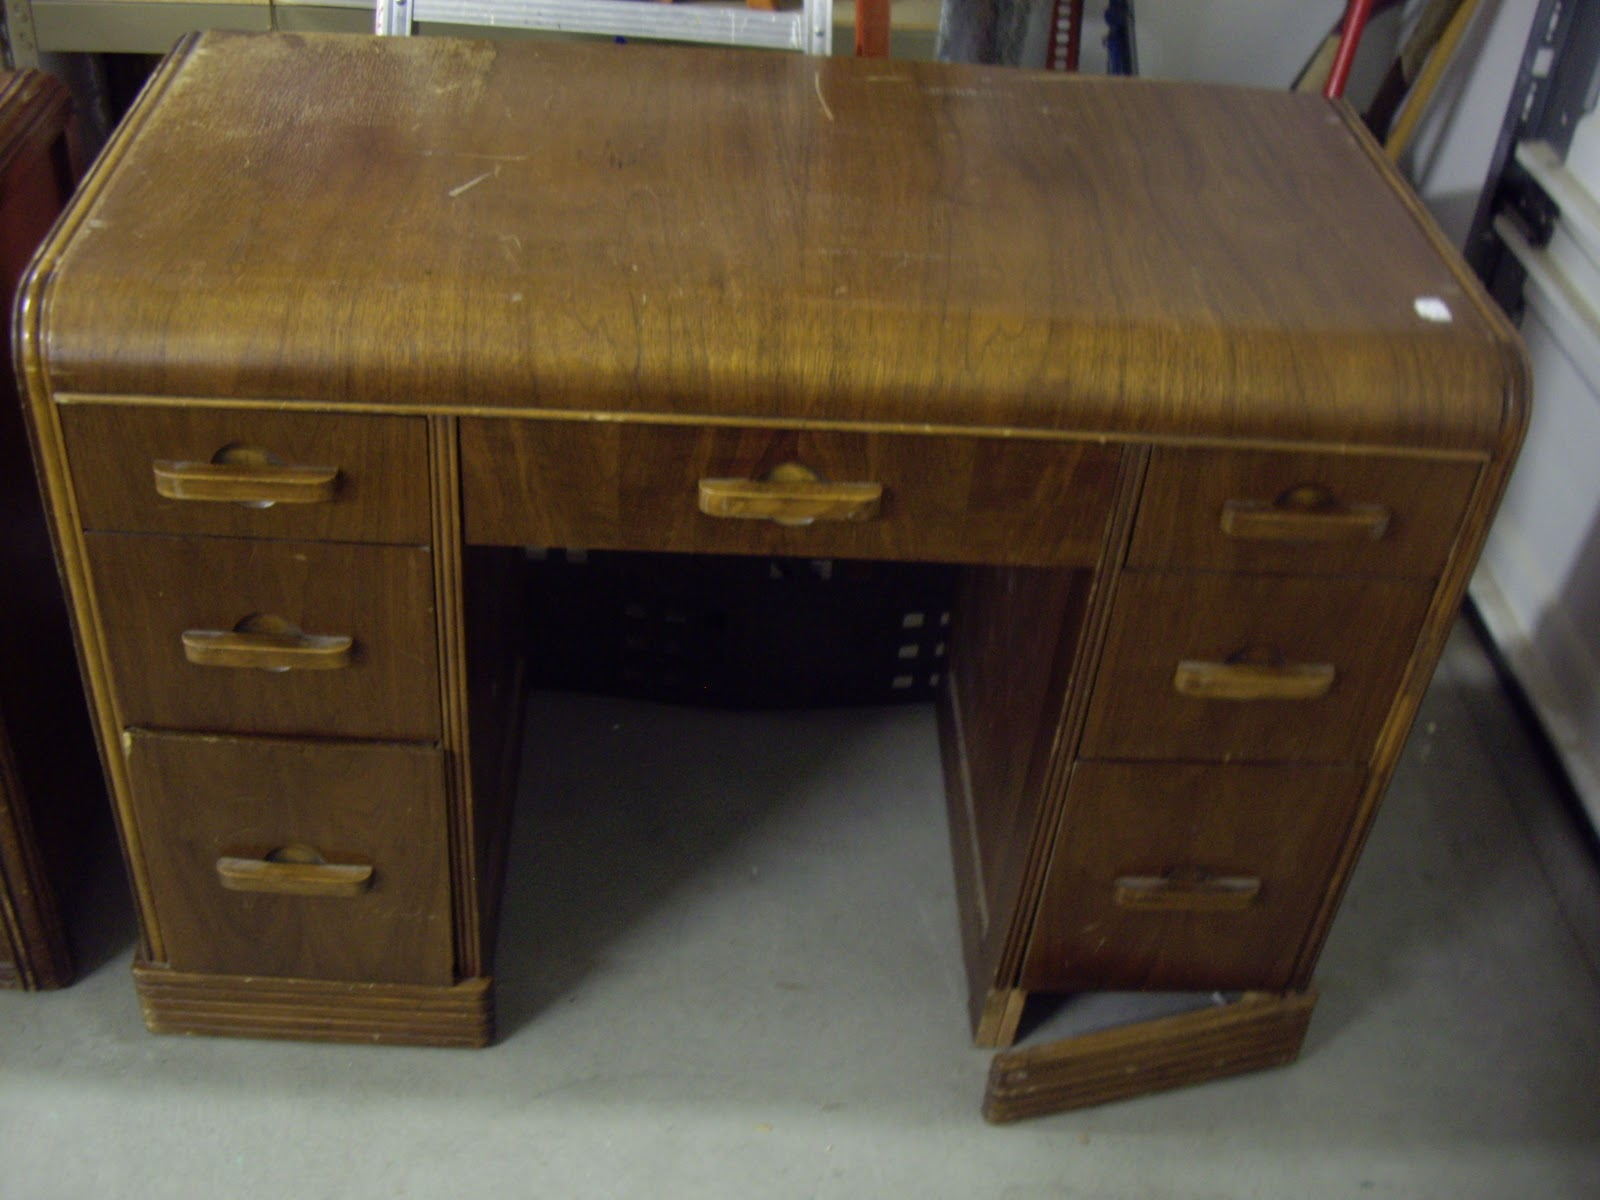 A Brush of Whimsy Waterfall Desk